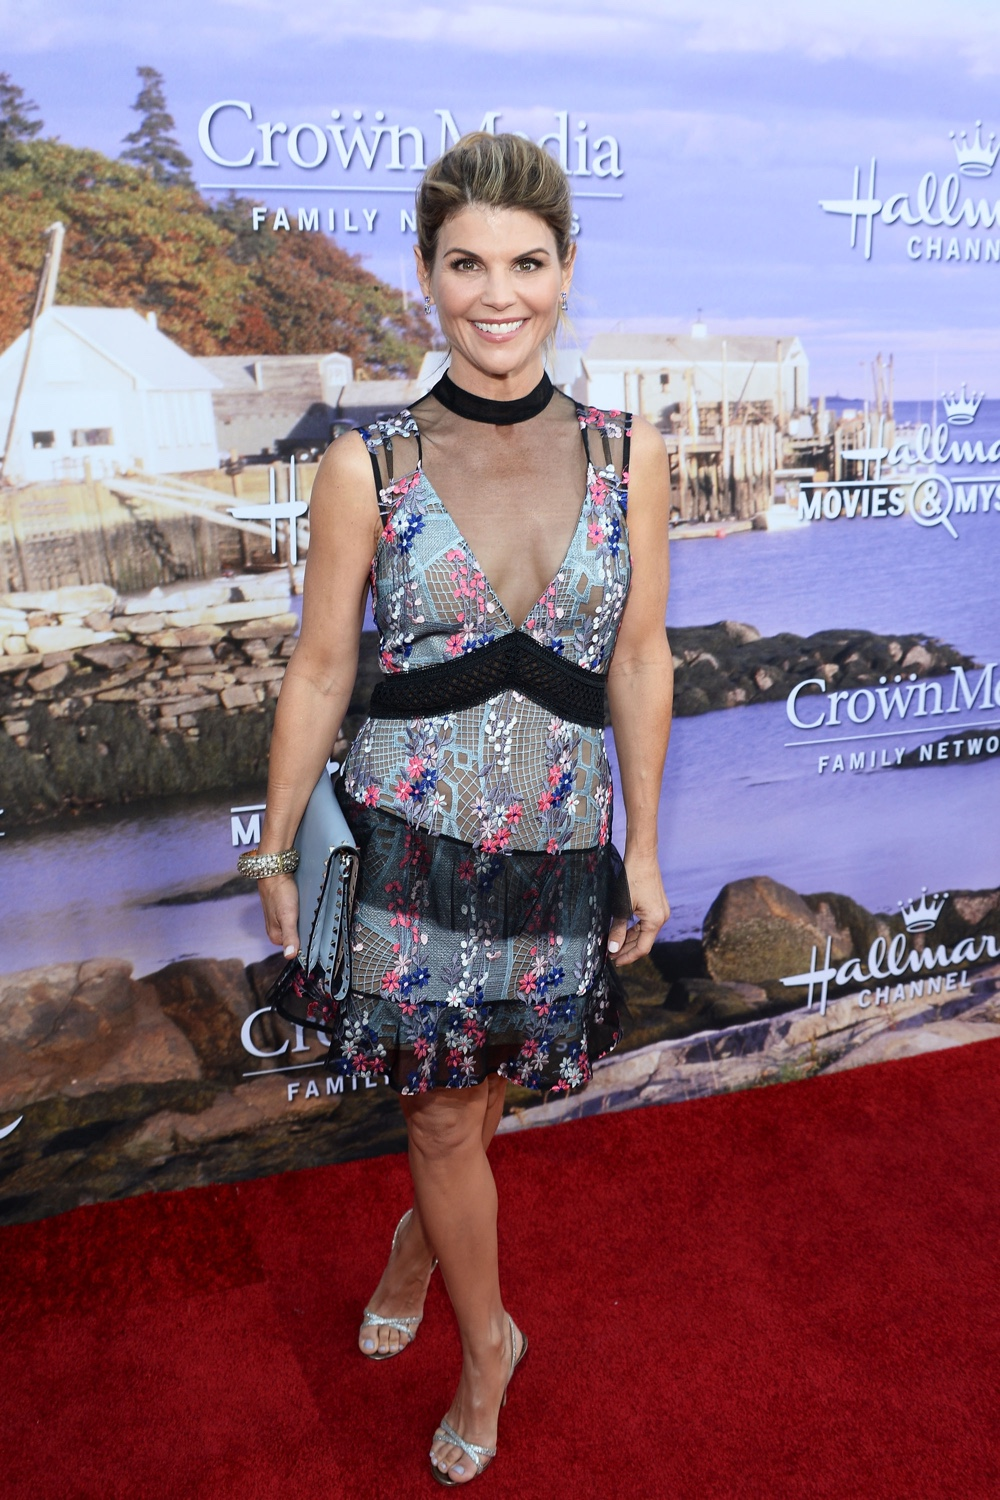 Lori Loughlin Hallmark Channel And Hallmark Movies And Mysteries Summer 2016 TCA Press Tour Event - Arrivals